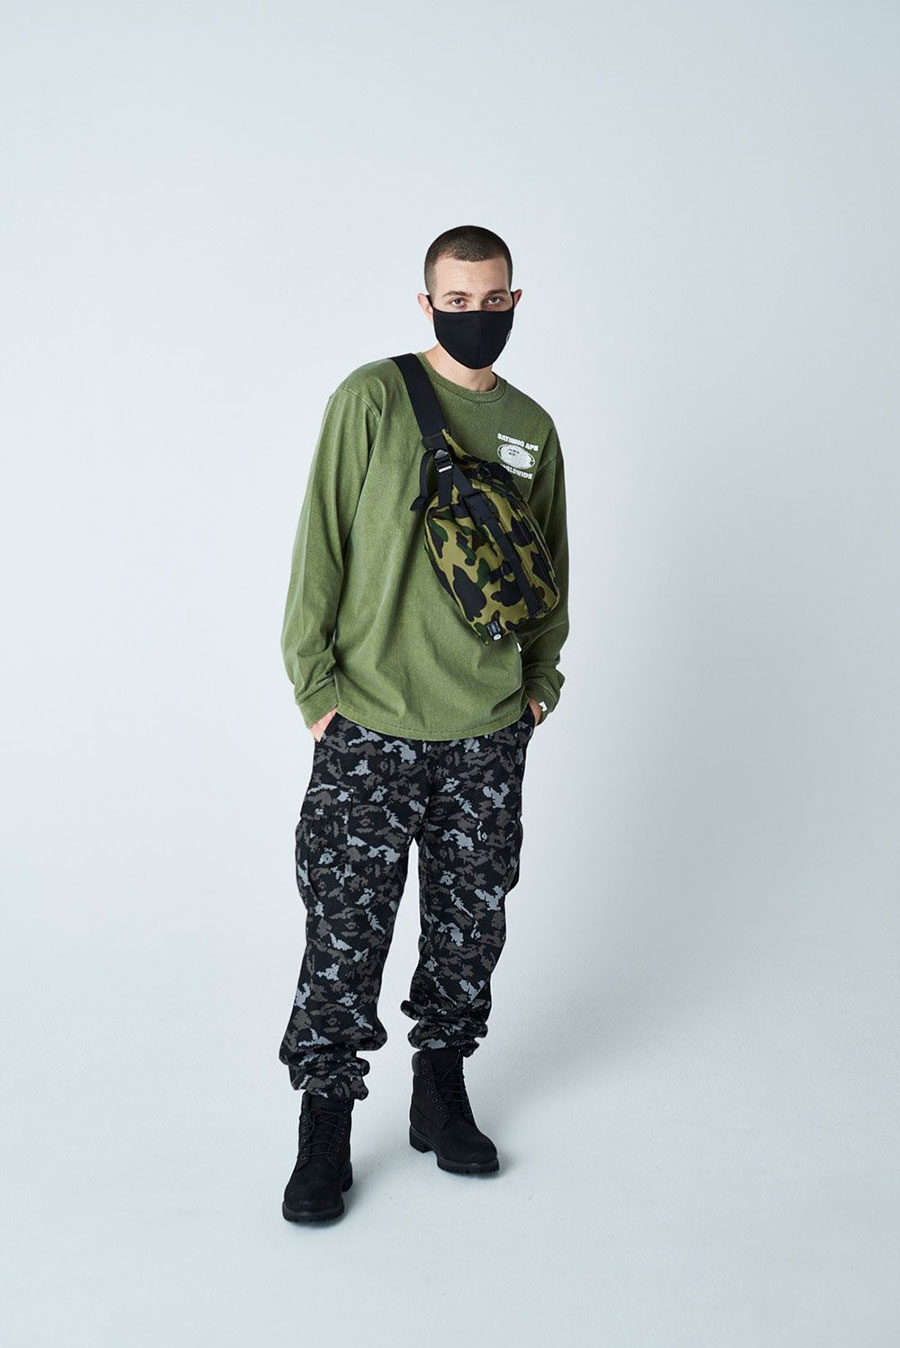 潮牌 A BATHING APE® 发布 2020 最新秋冬男装搭配造型 Lookbook插图(16)